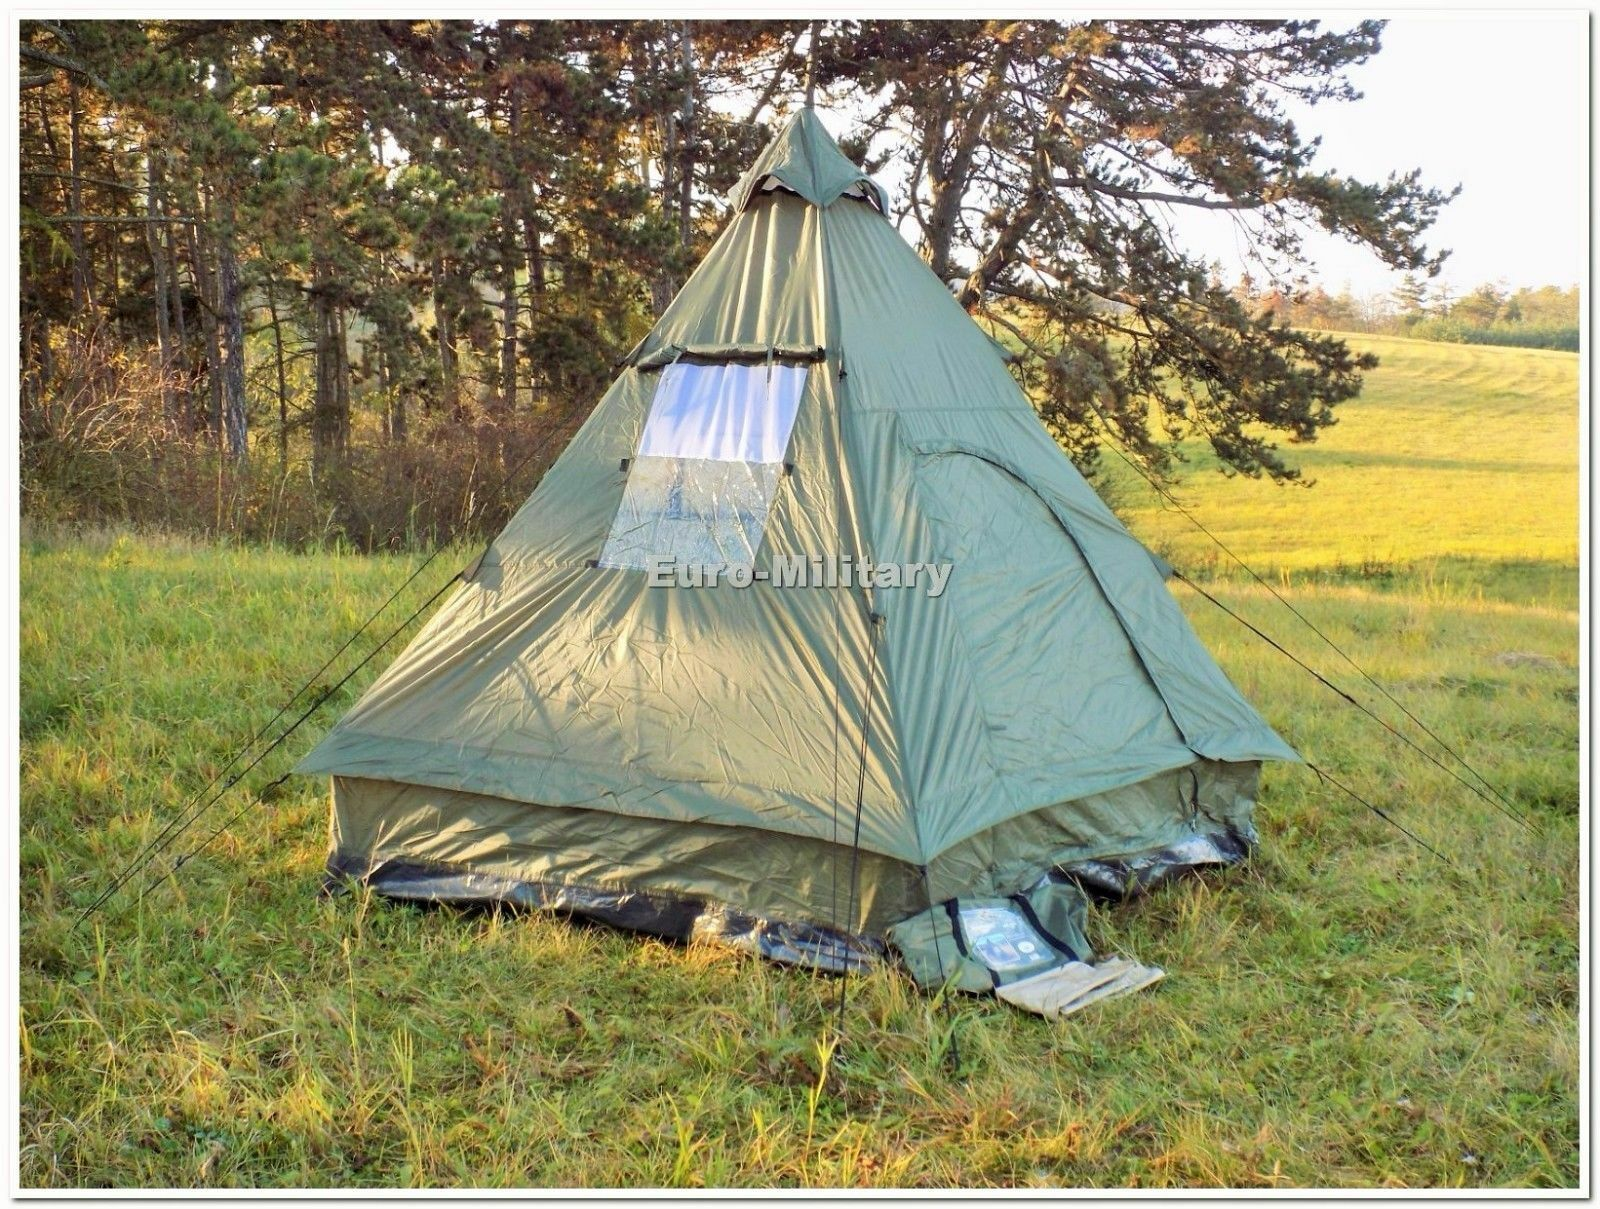 Military&Outdoor Four  Man Pyramid Tipi Tent Camping Hunting Waterproof Shelter  online